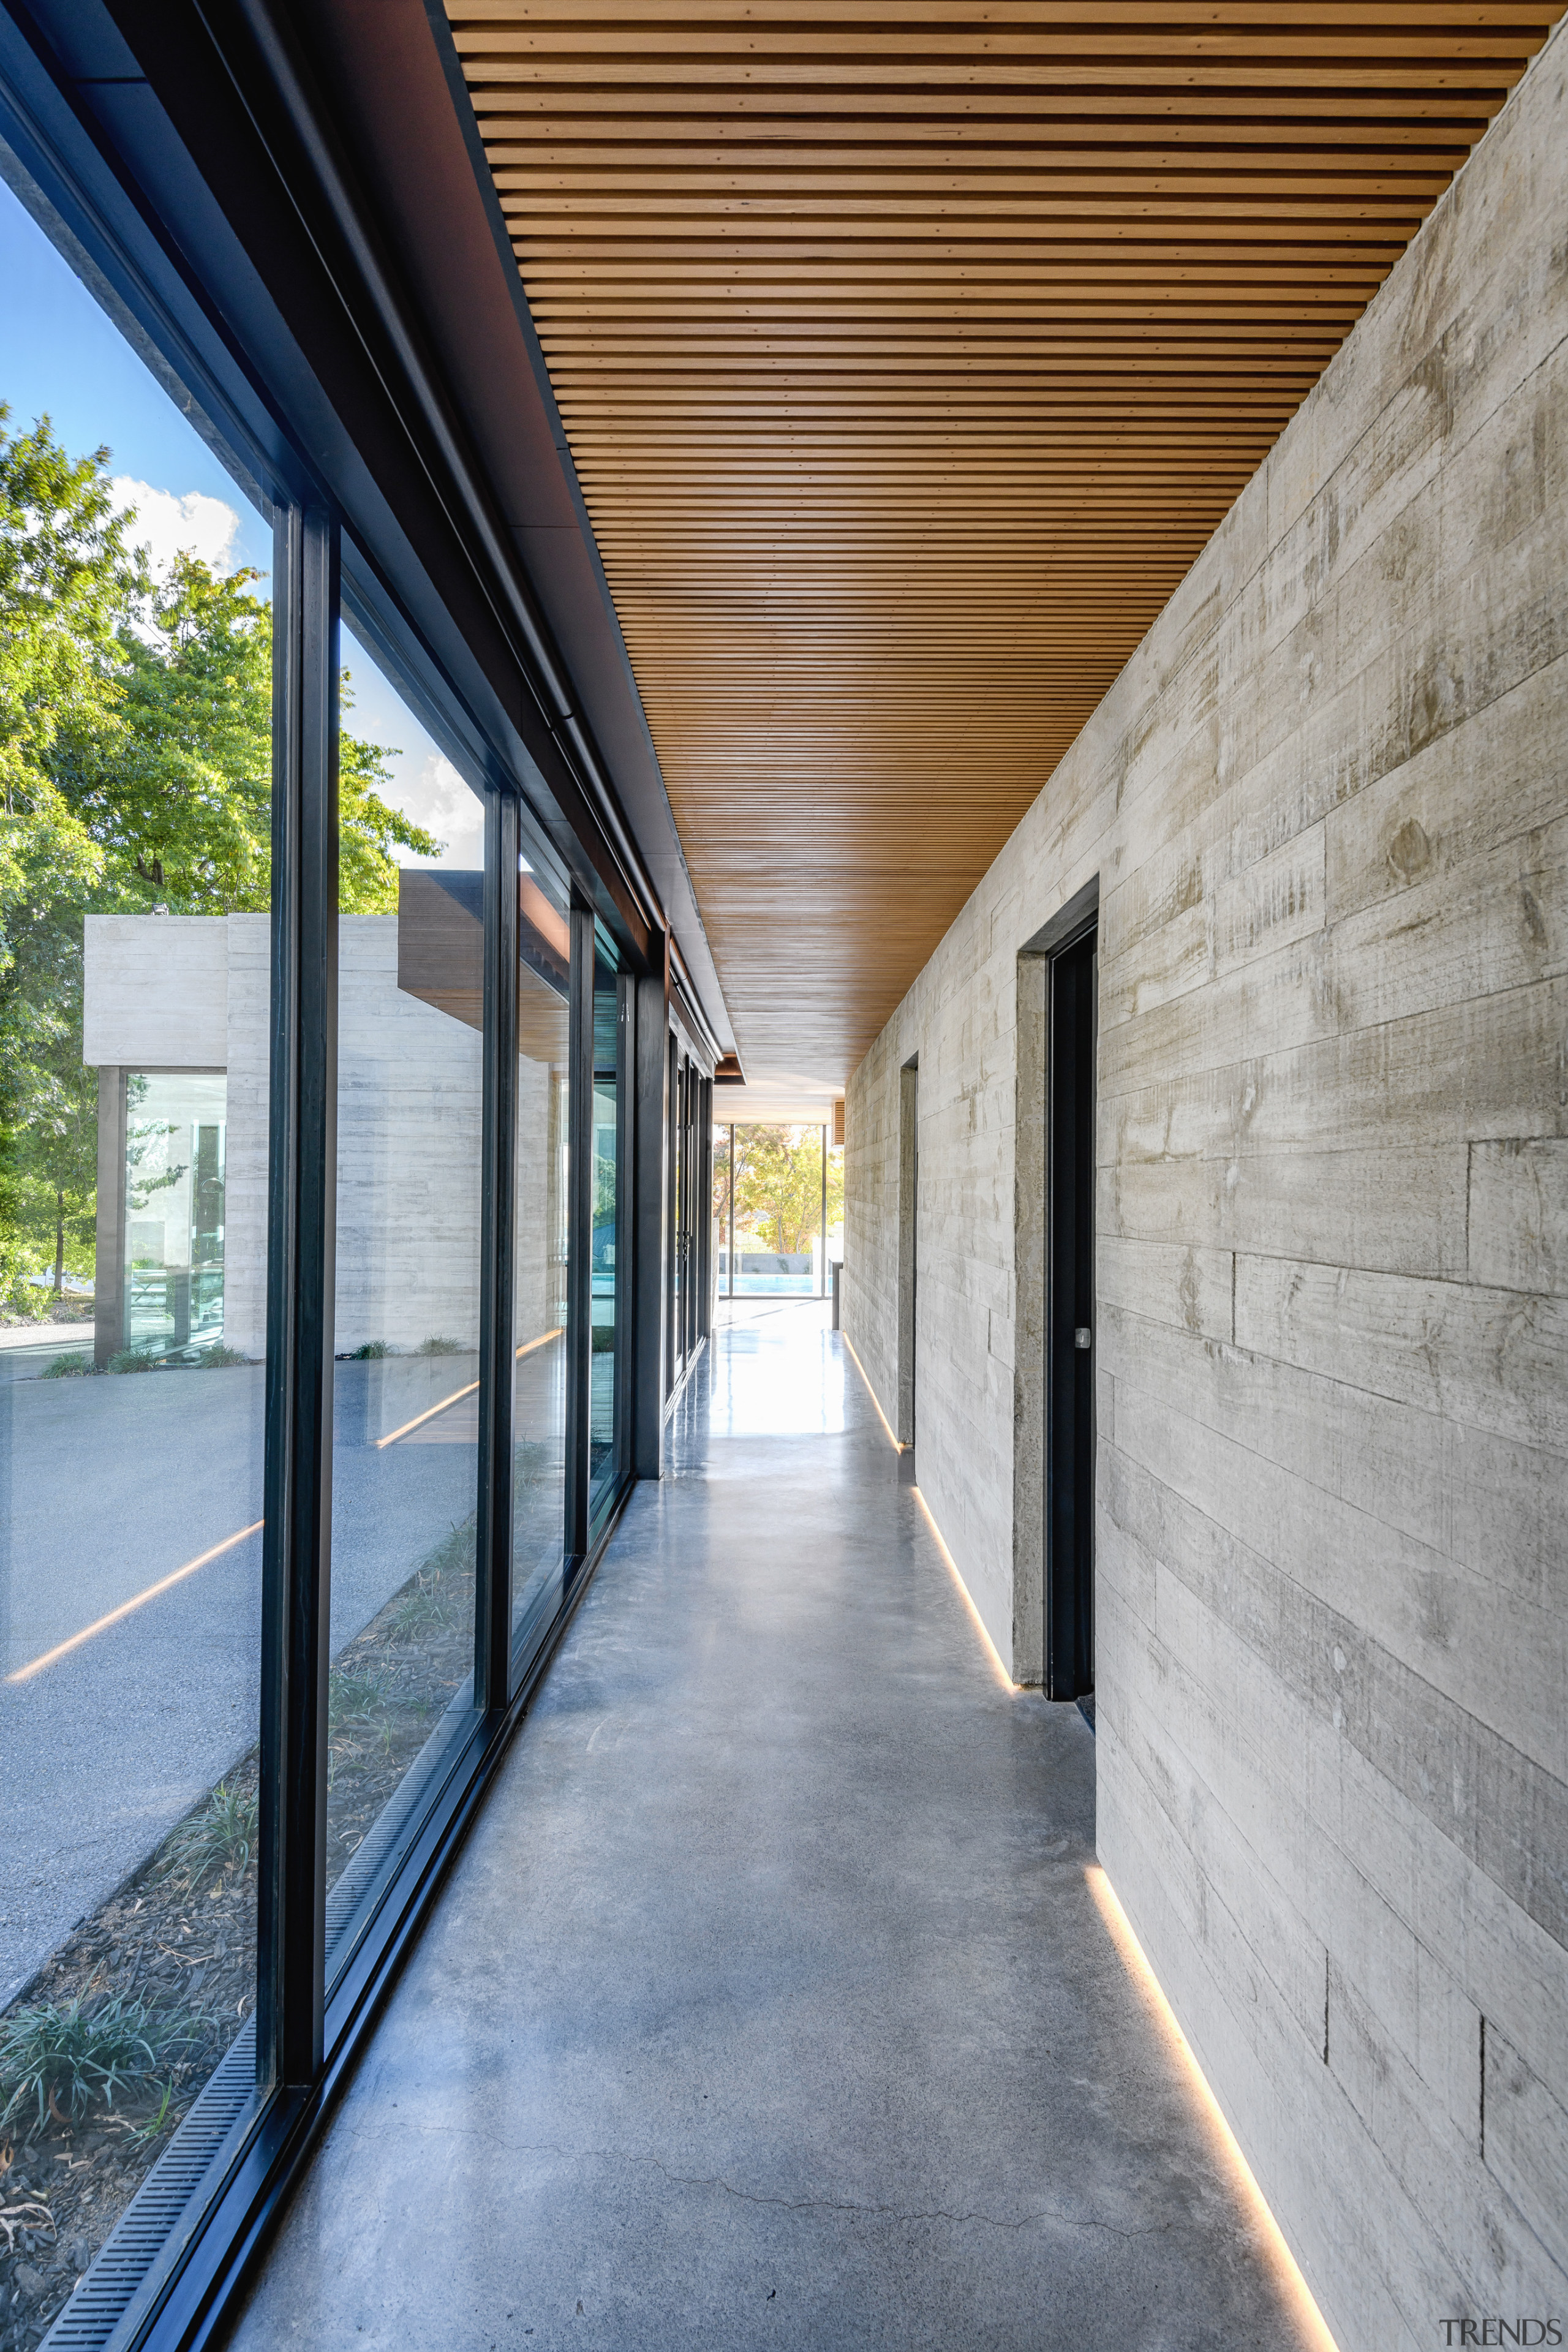 A long look down this home's connecting corridor architecture, brick, building, ceiling, concrete, daylighting, facade, floor, glass, hall, home, house, interior design, line, property, real estate, shade, walkway, wall, window, gray